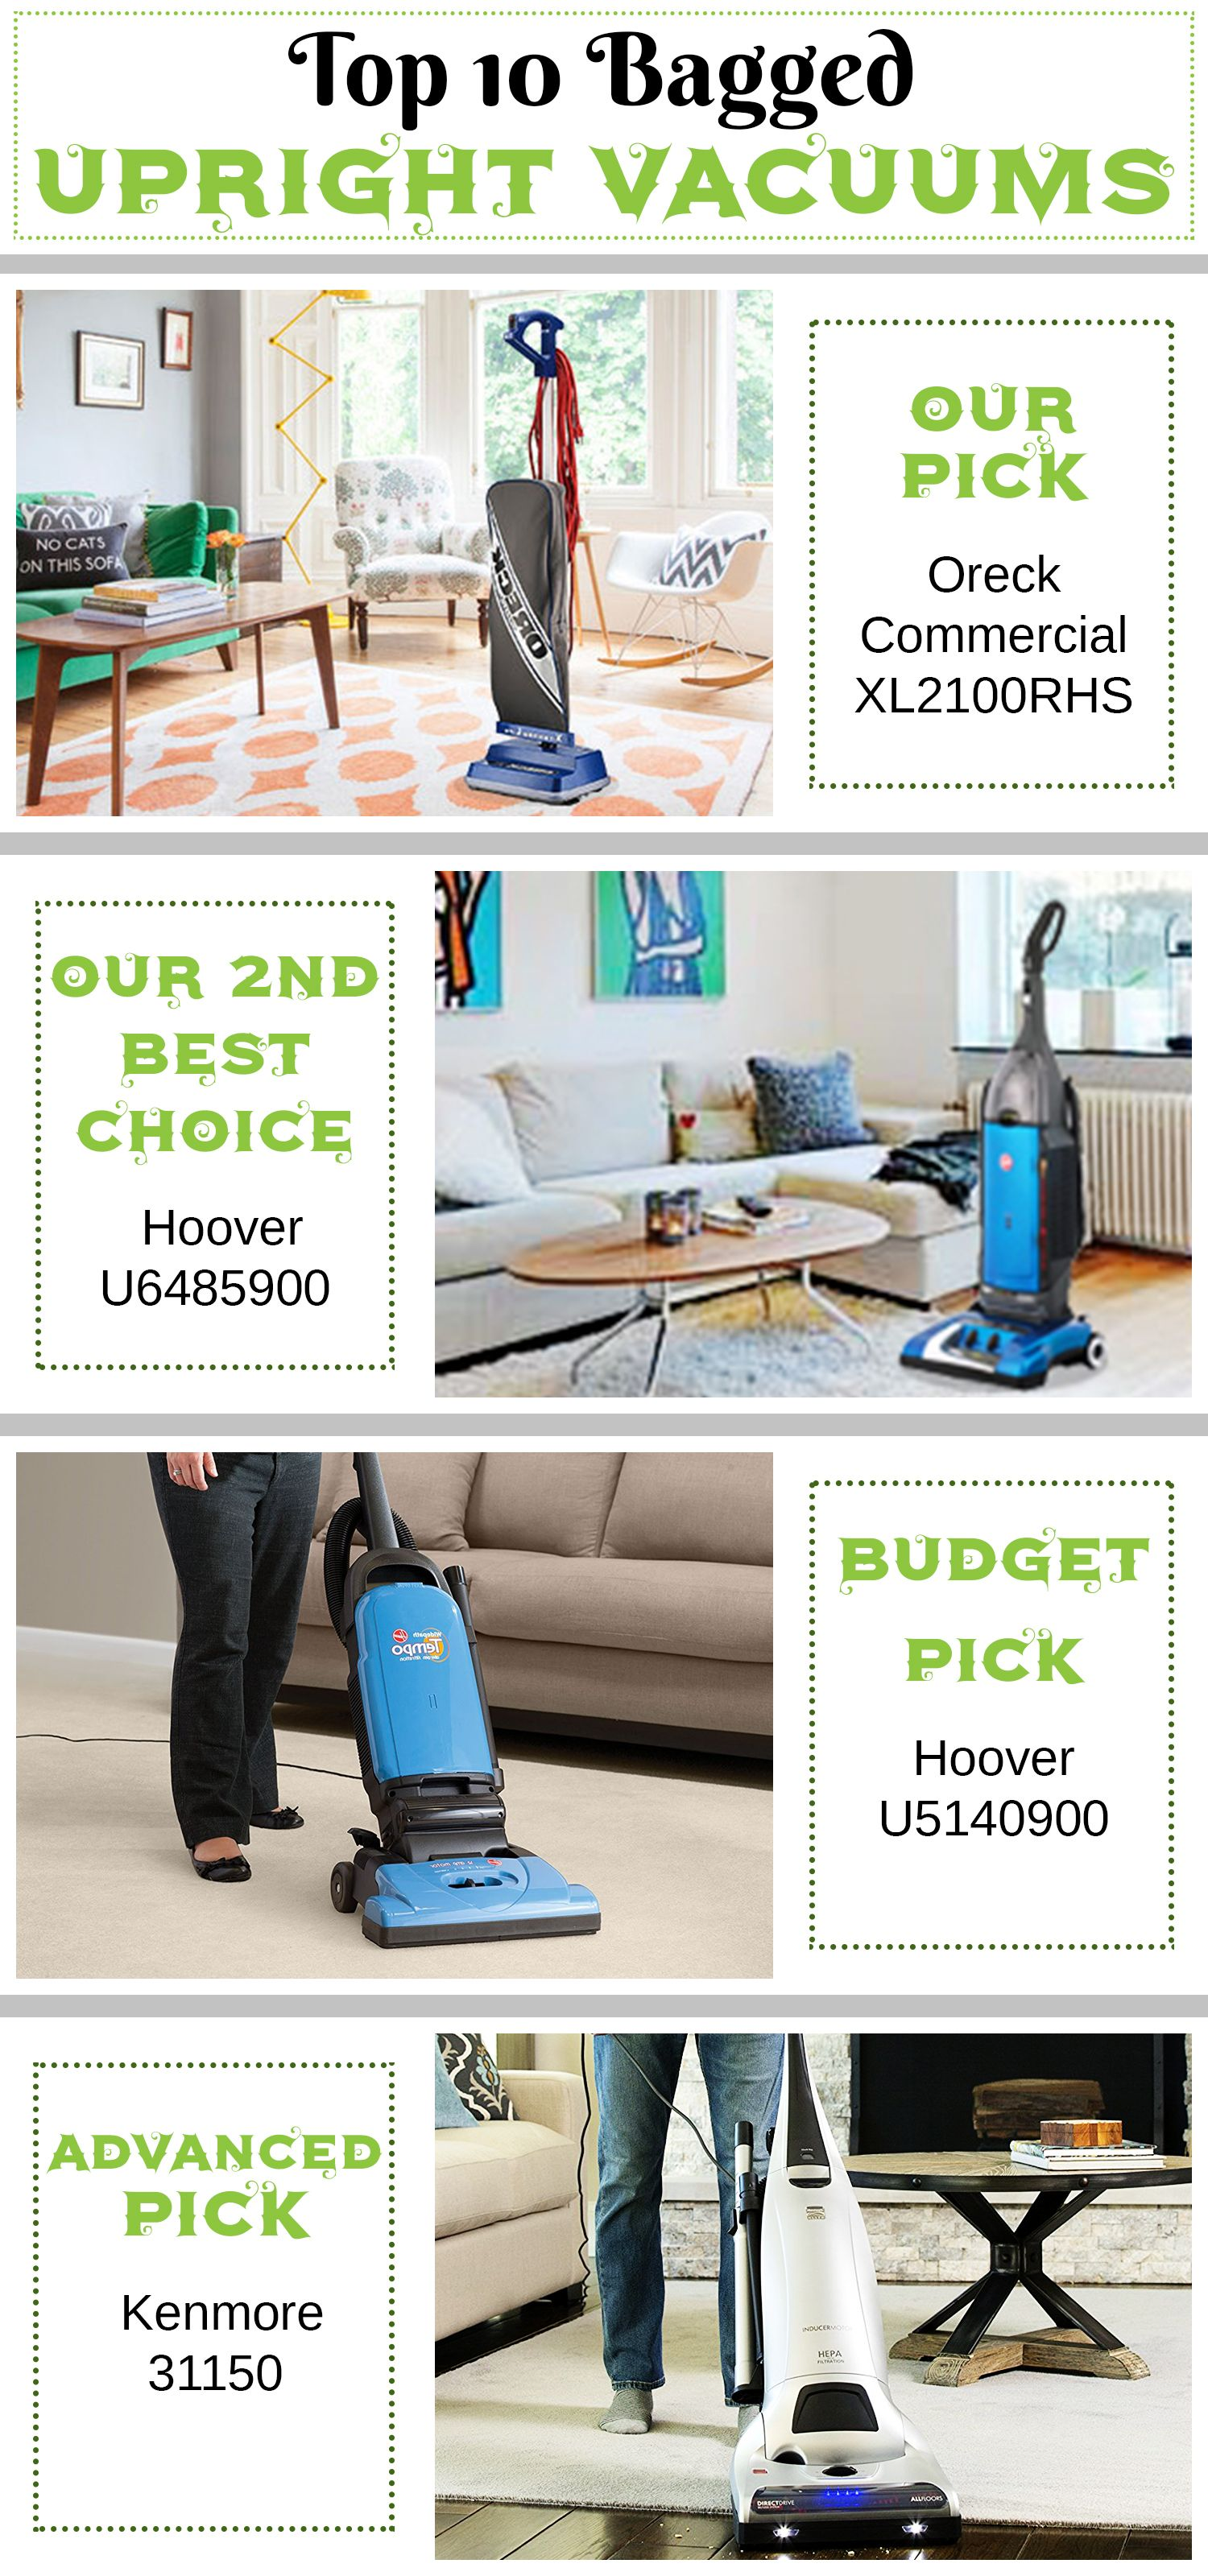 Best Upright Vacuum For Bare Floors And Carpet Carpet